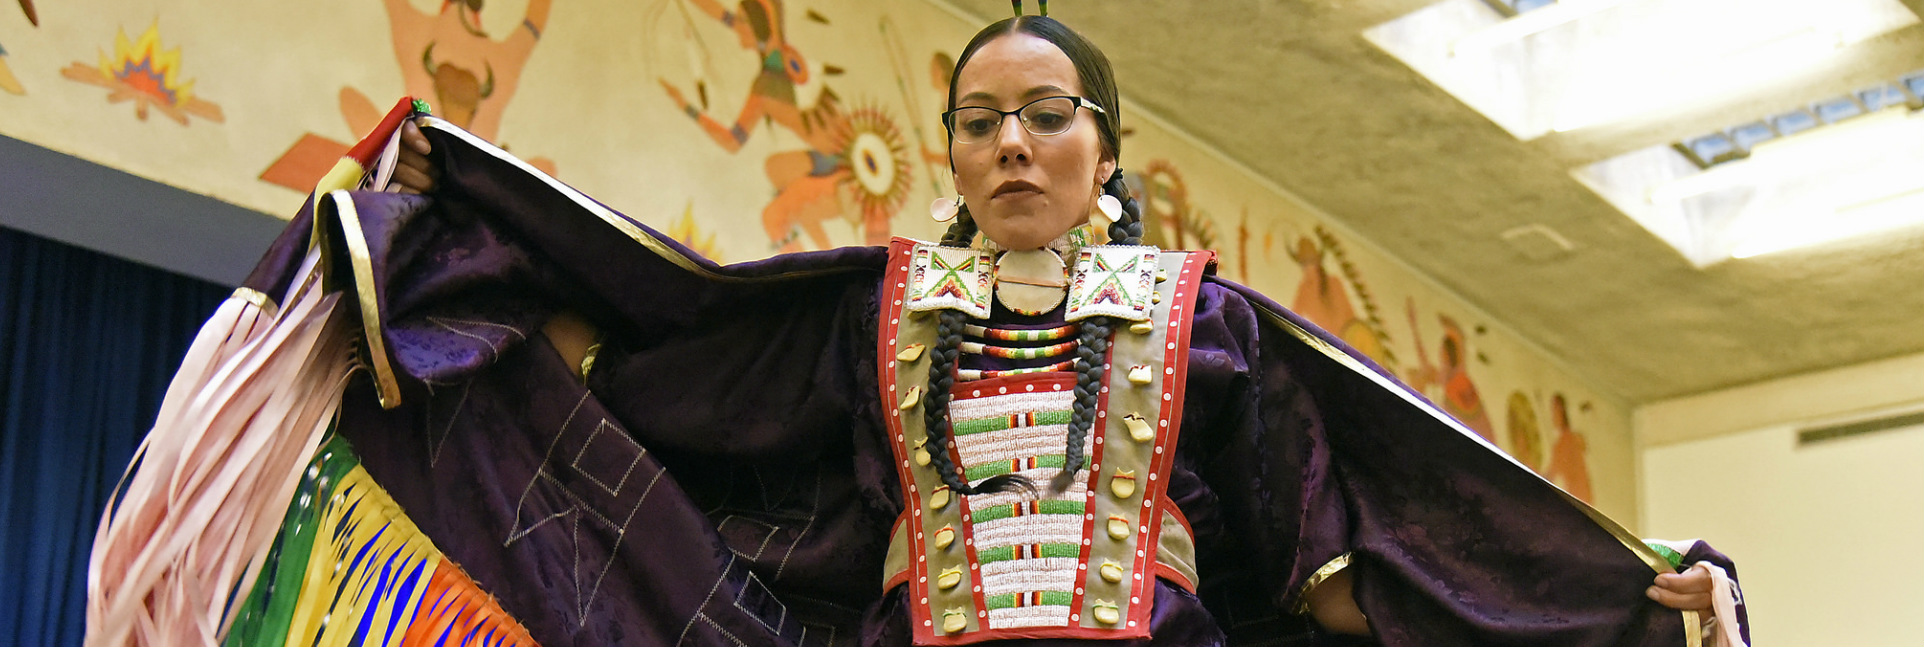 A Native American woman in elaborate traditional clothes dances in front of a Native American mural in a large room.